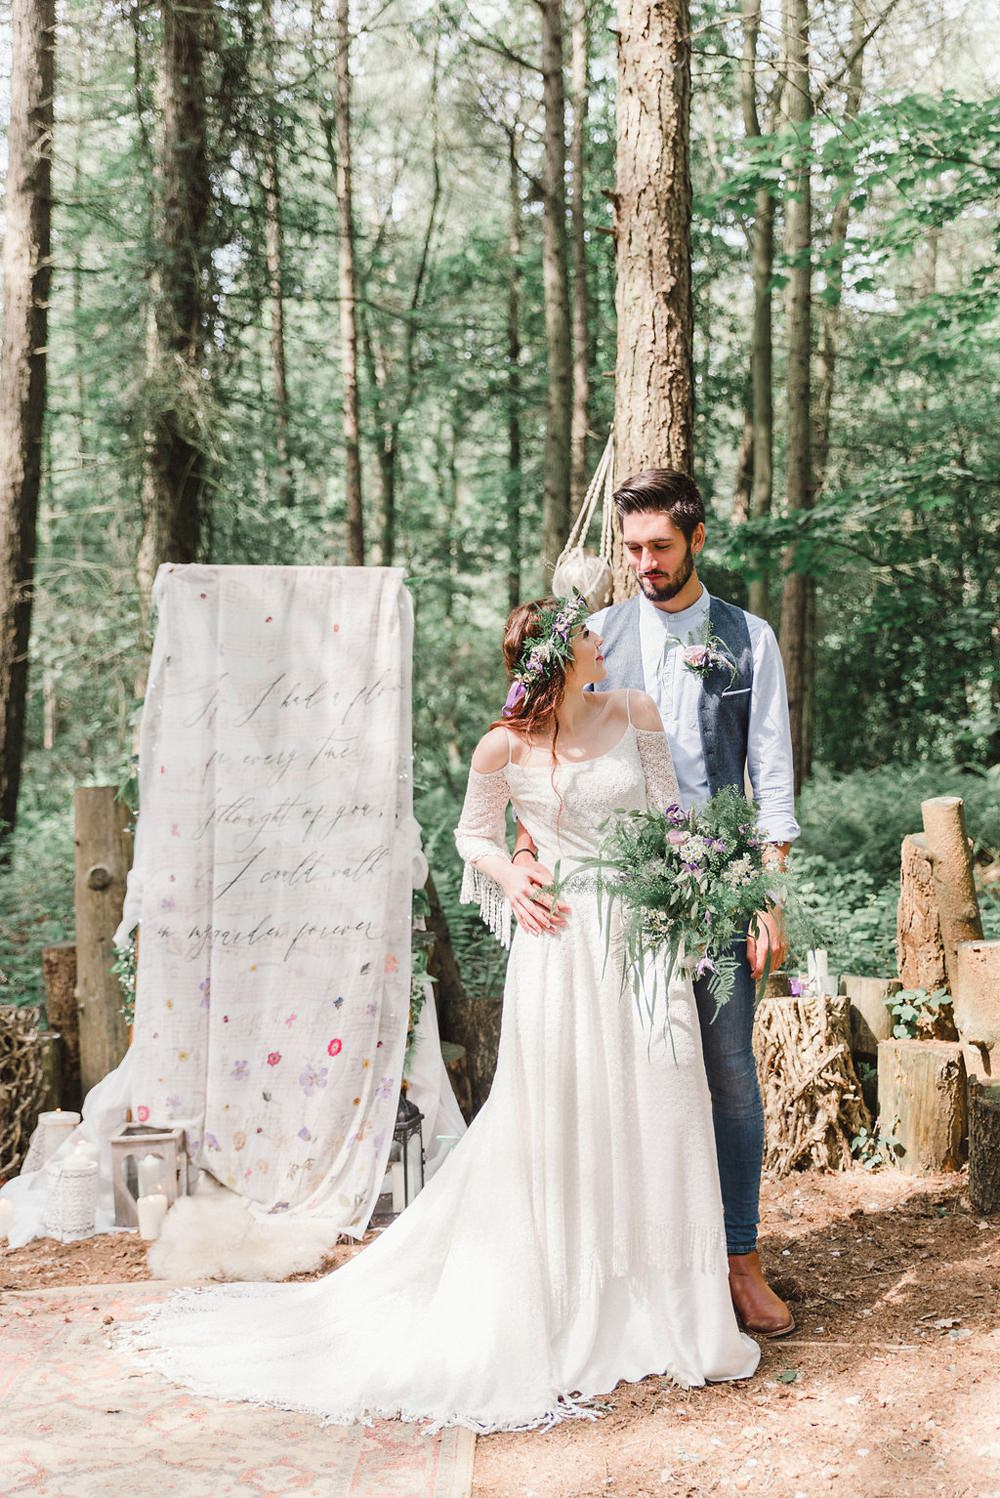 Outdoor Ceremony Words Script Backdrop Paper Scroll Banner Persian Rug Aisle Boho Woodland Wedding Ideas Camp Katur Emily Olivia Photography